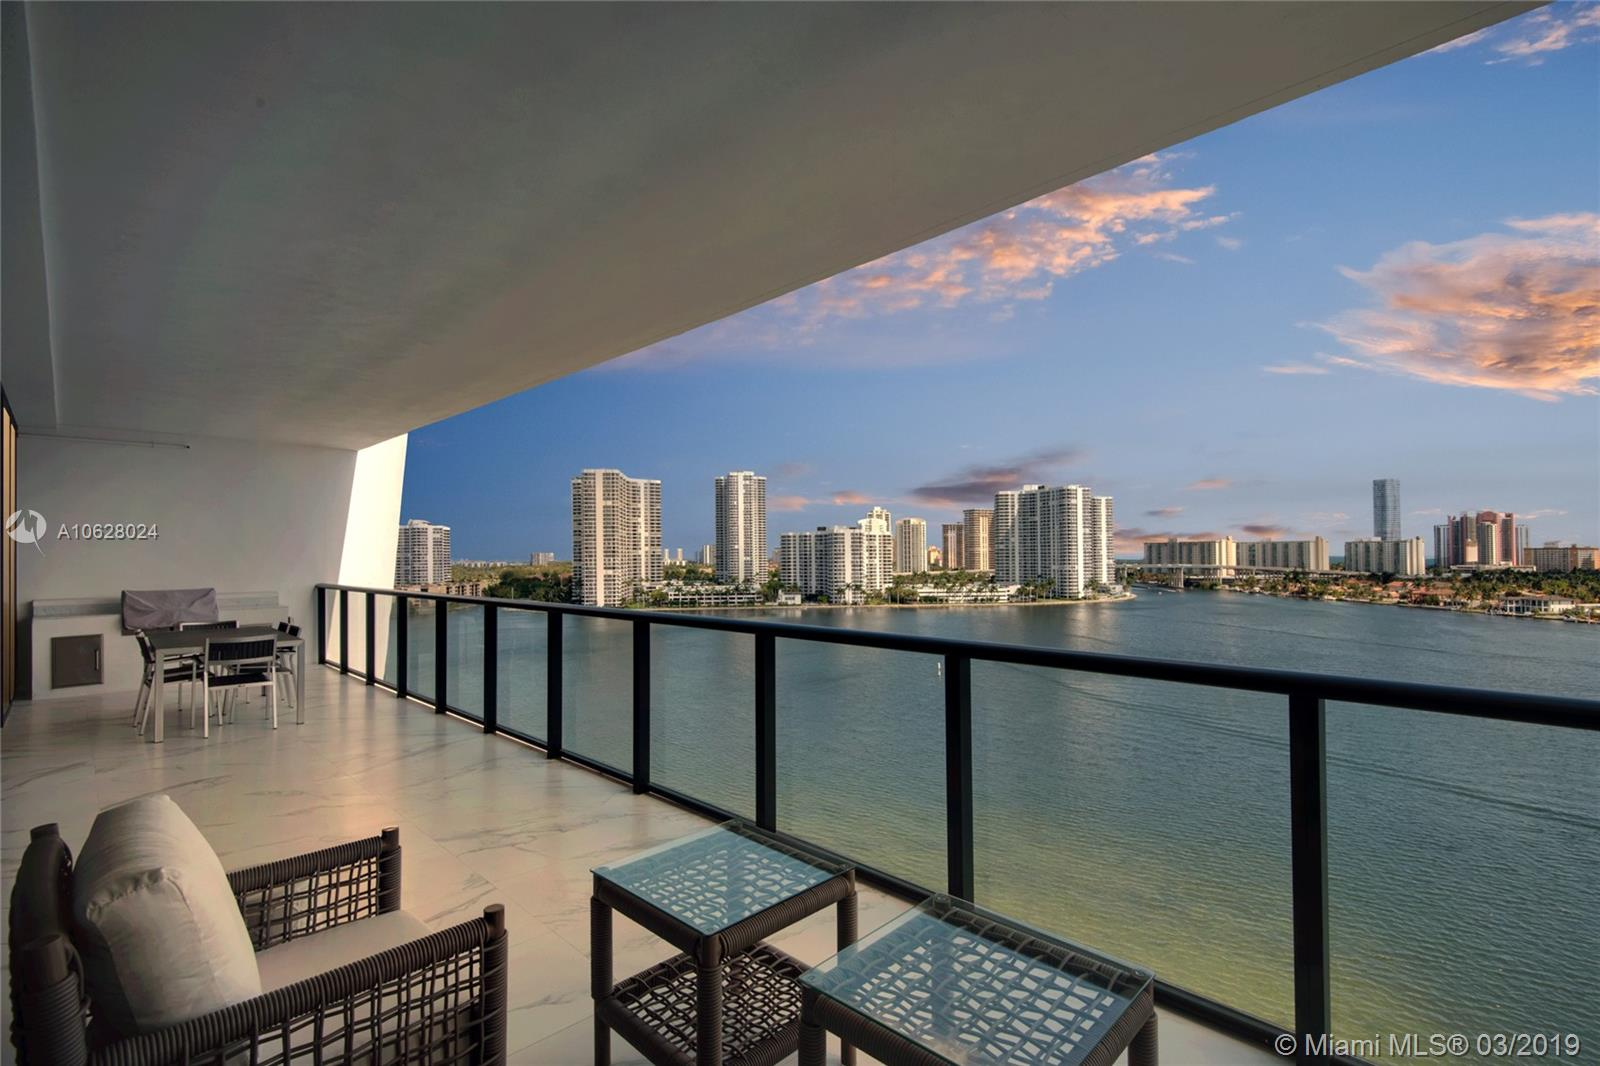 Unit drastically reduced. Owners need to sell. Just bring your toothbrush. The most beautiful unit in Prive decorated and furnished by World Renown Interior Designer Steven G. Prive is located in an exclusive and private island that offers its residences an extraordinary lifestyle. This unit has a breathtaking view of the ocean, the city and the intracoastal waterways. Unit comes with a Summer Kitchen on the terrace, 10 feet ceilings, floor to ceiling windows, private elevators, 2 car garage parking spaces and unlimited valet service. Amenities include 5 star concierge, onsite café, in residence room service, pool, spa, tennis court, nature path, private jetty for guest boat landing, state of the art gym, media room and private marina.